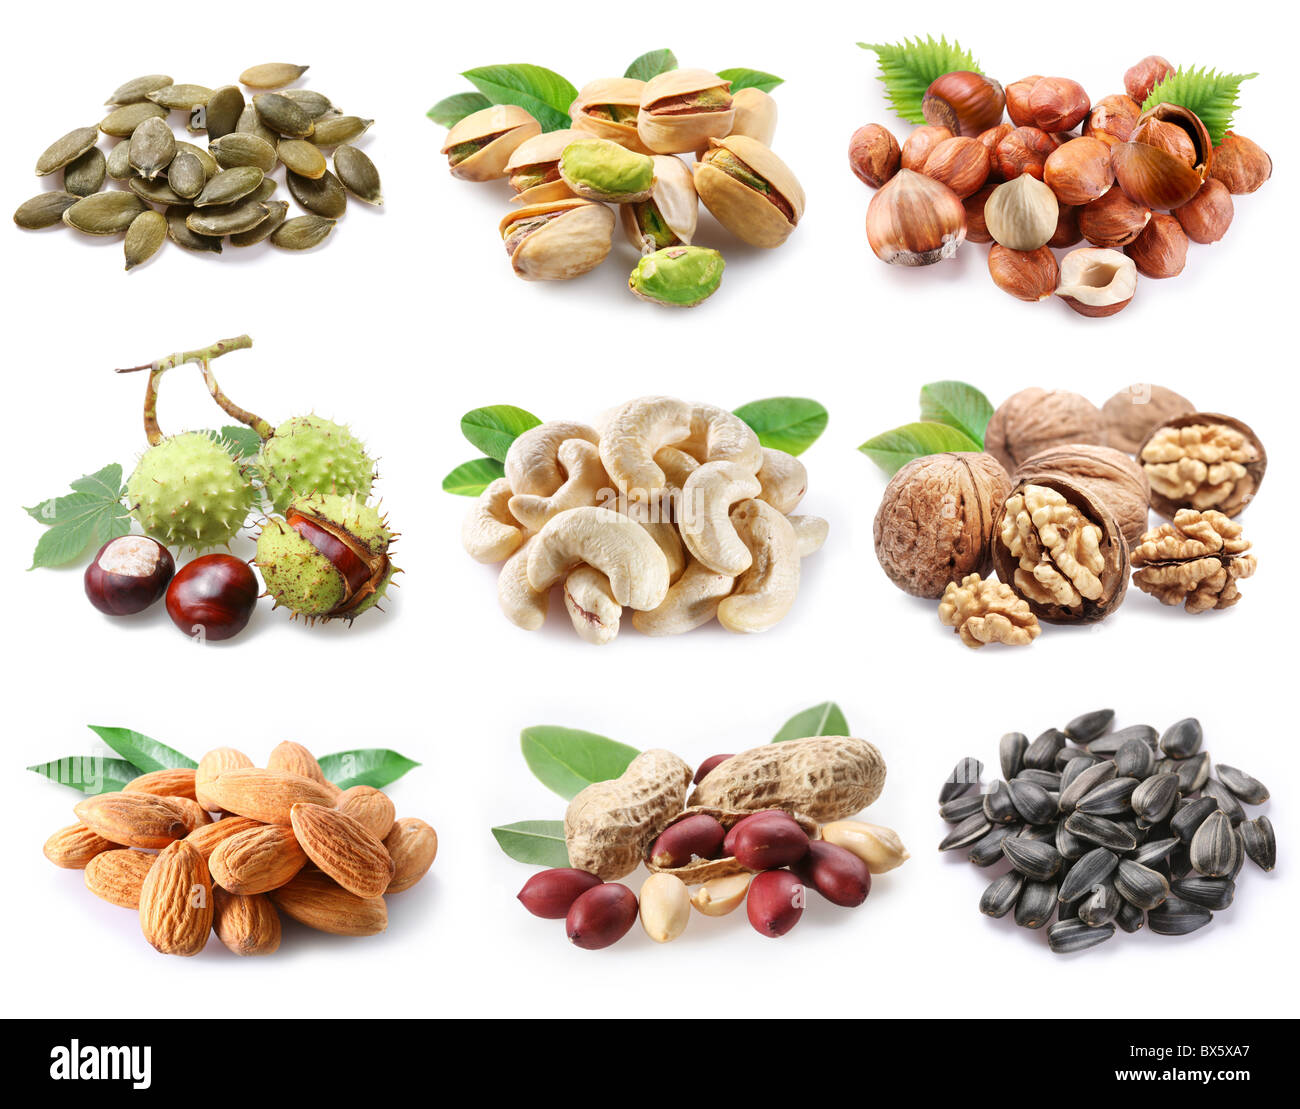 Сollection of ripe nuts and seeds on a white background Stock Photo